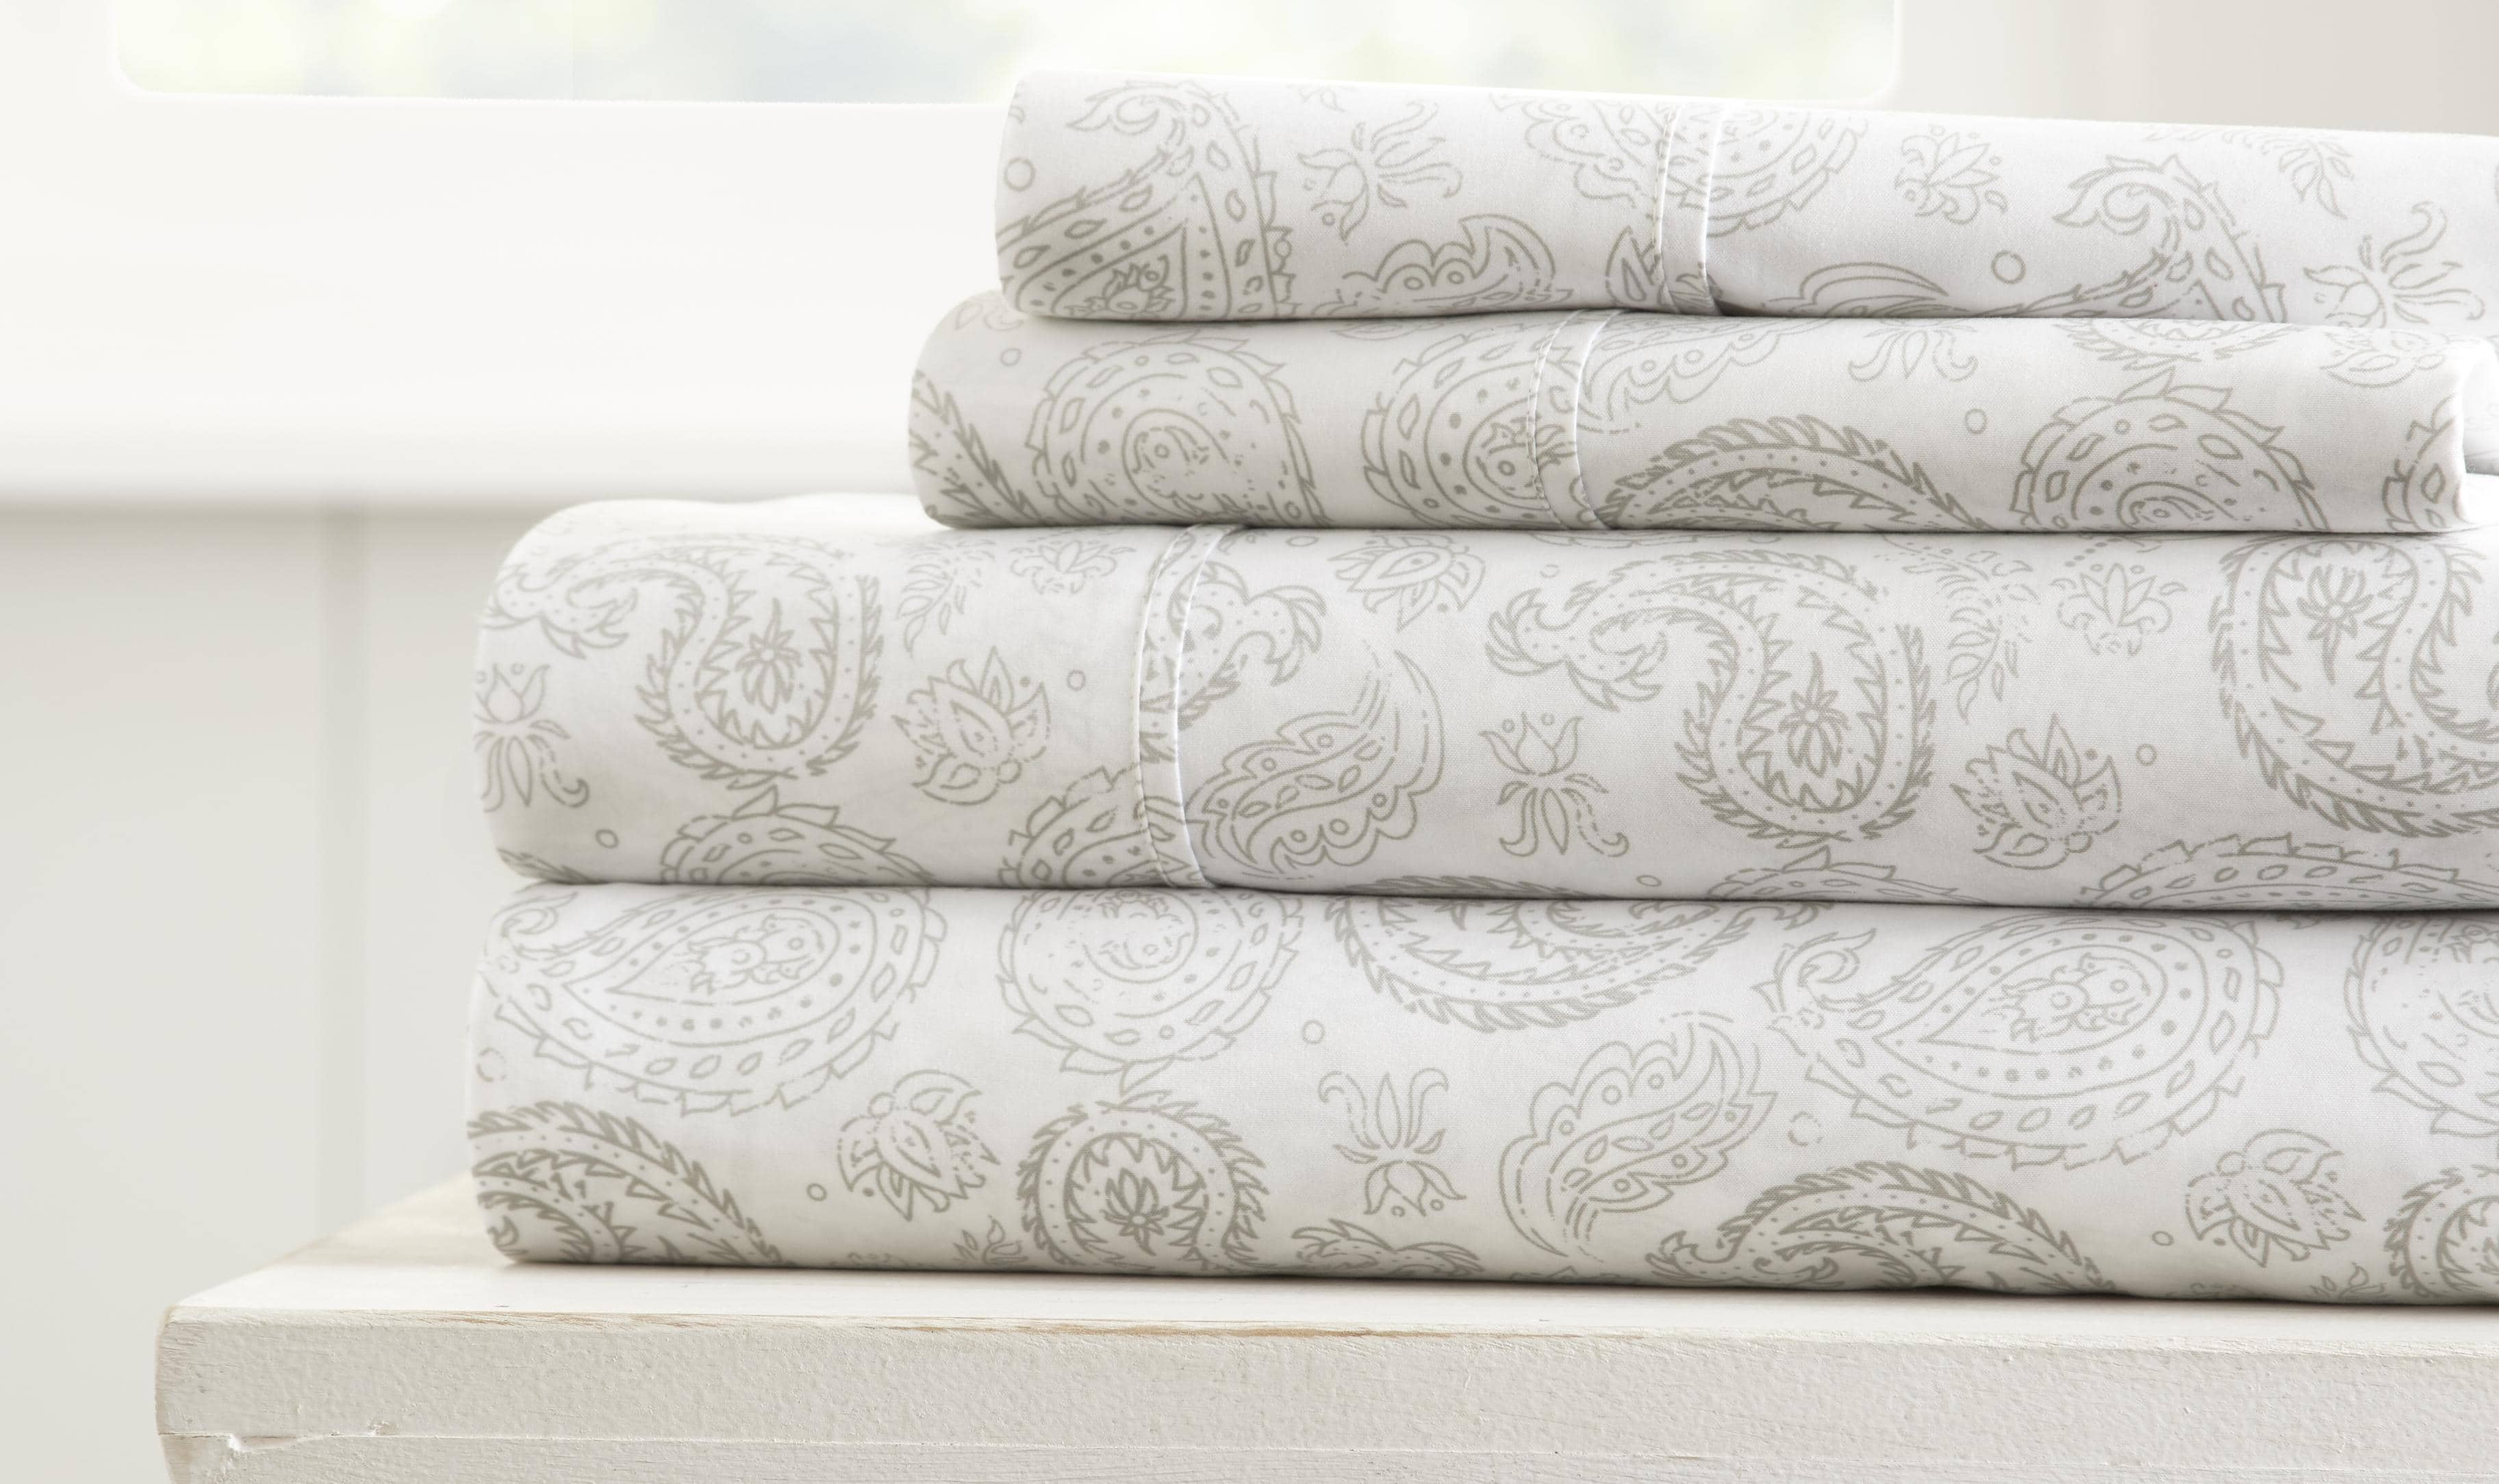 Coarse Paisley 4-Piece Patterned Sheet Set Starting at $20.25